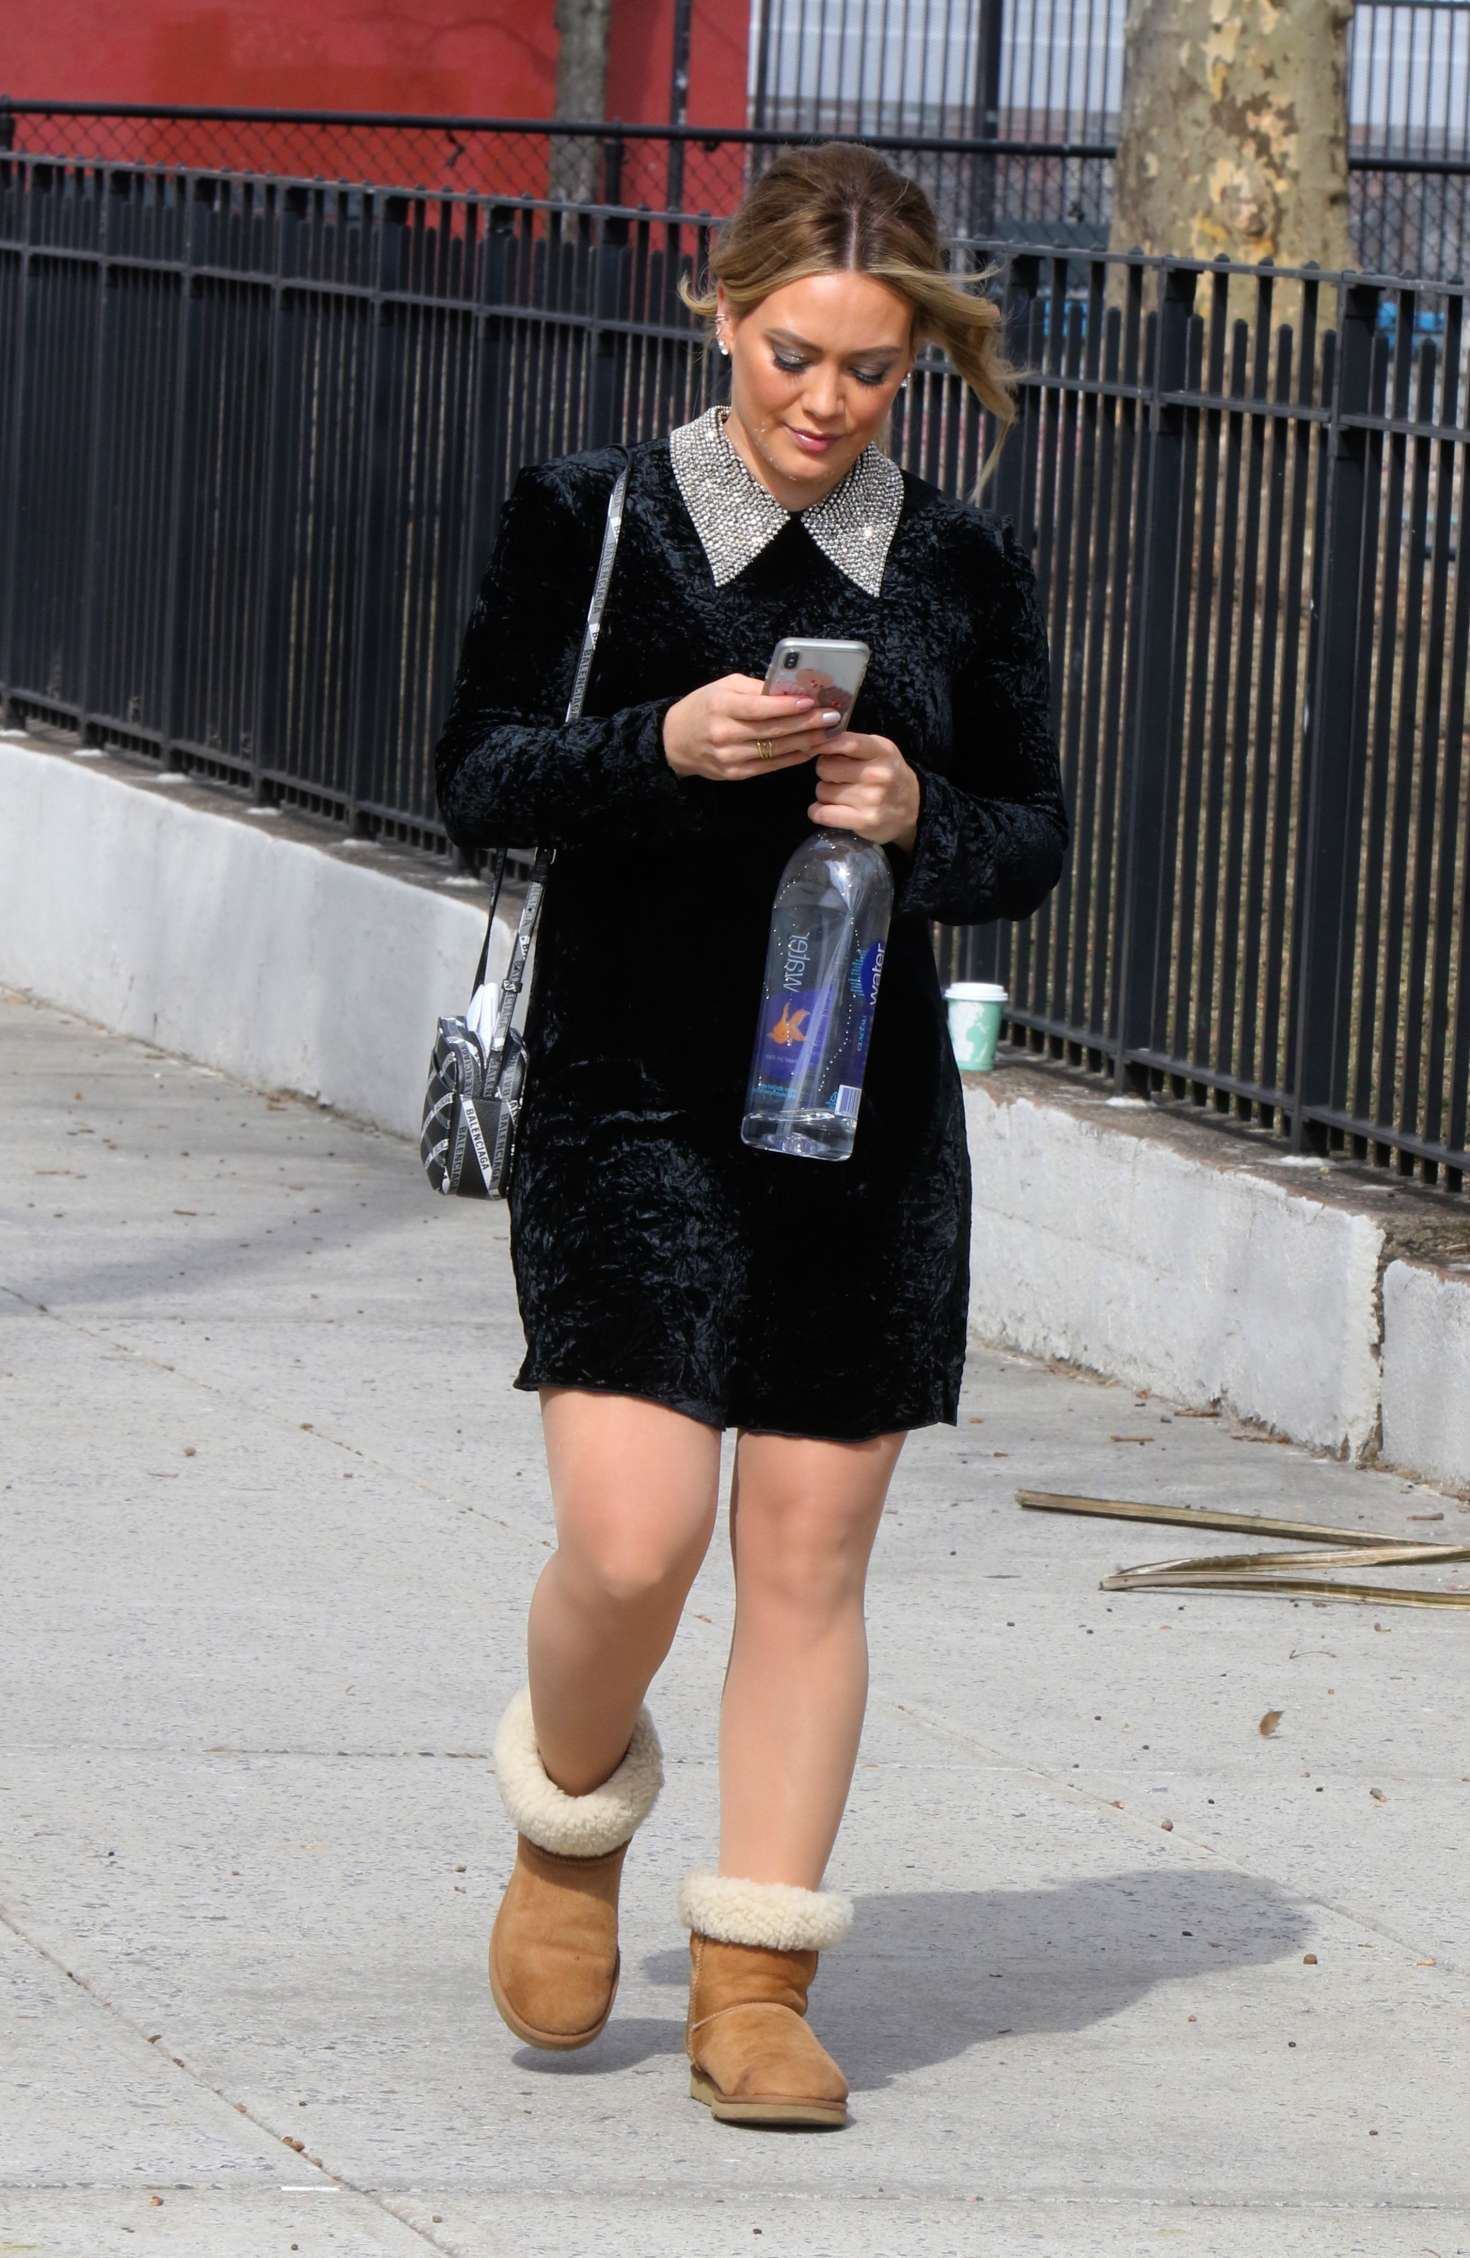 Hilary Duff in Mini Dress - On the set of 'Younger' in NYC